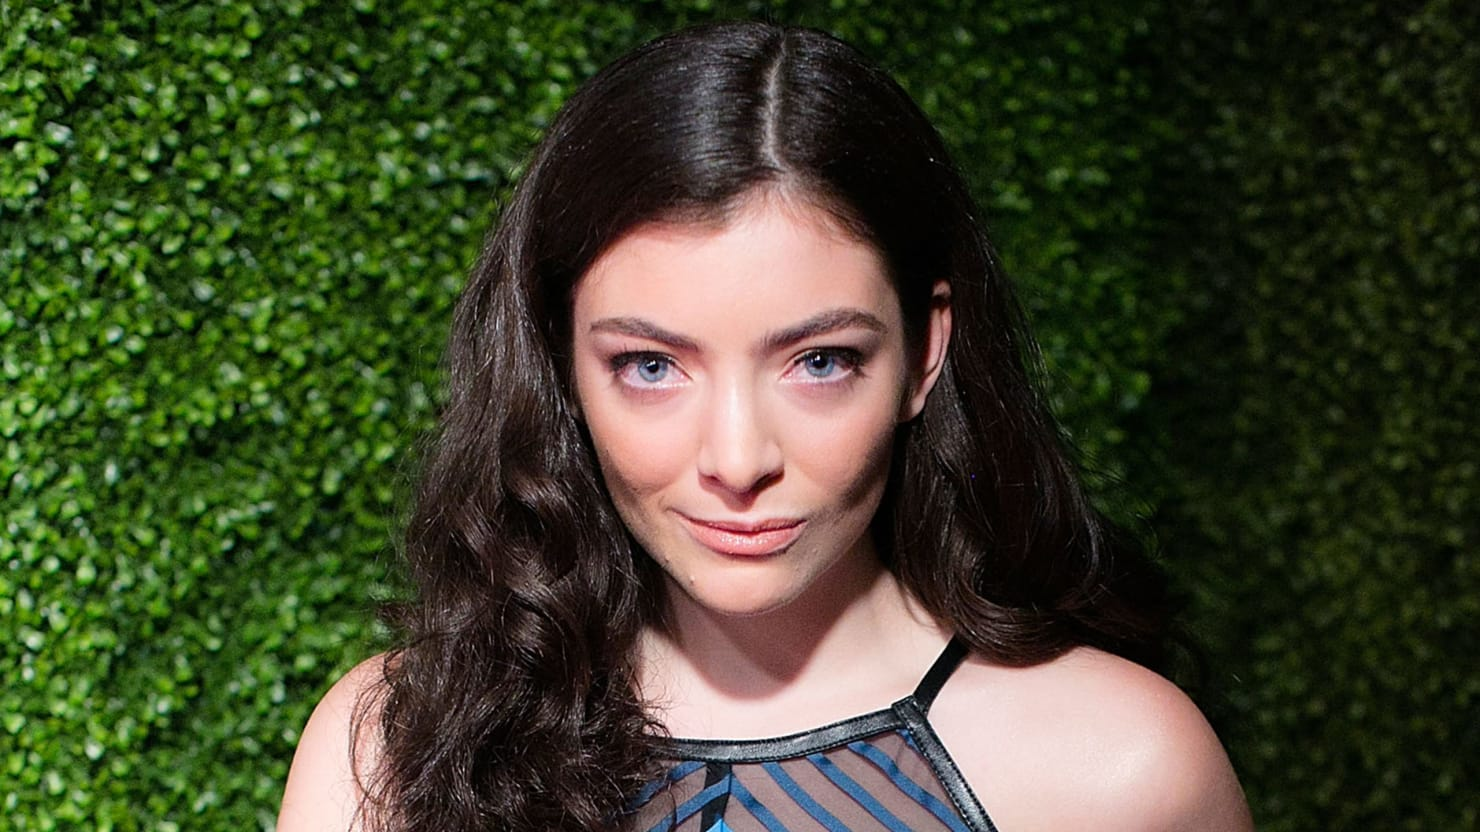 Lorde on Suddenly Getting the Royal Treatment: The Irony Is Not Lost OnMe' Lorde on Suddenly Getting the Royal Treatment: The Irony Is Not Lost OnMe' new pics